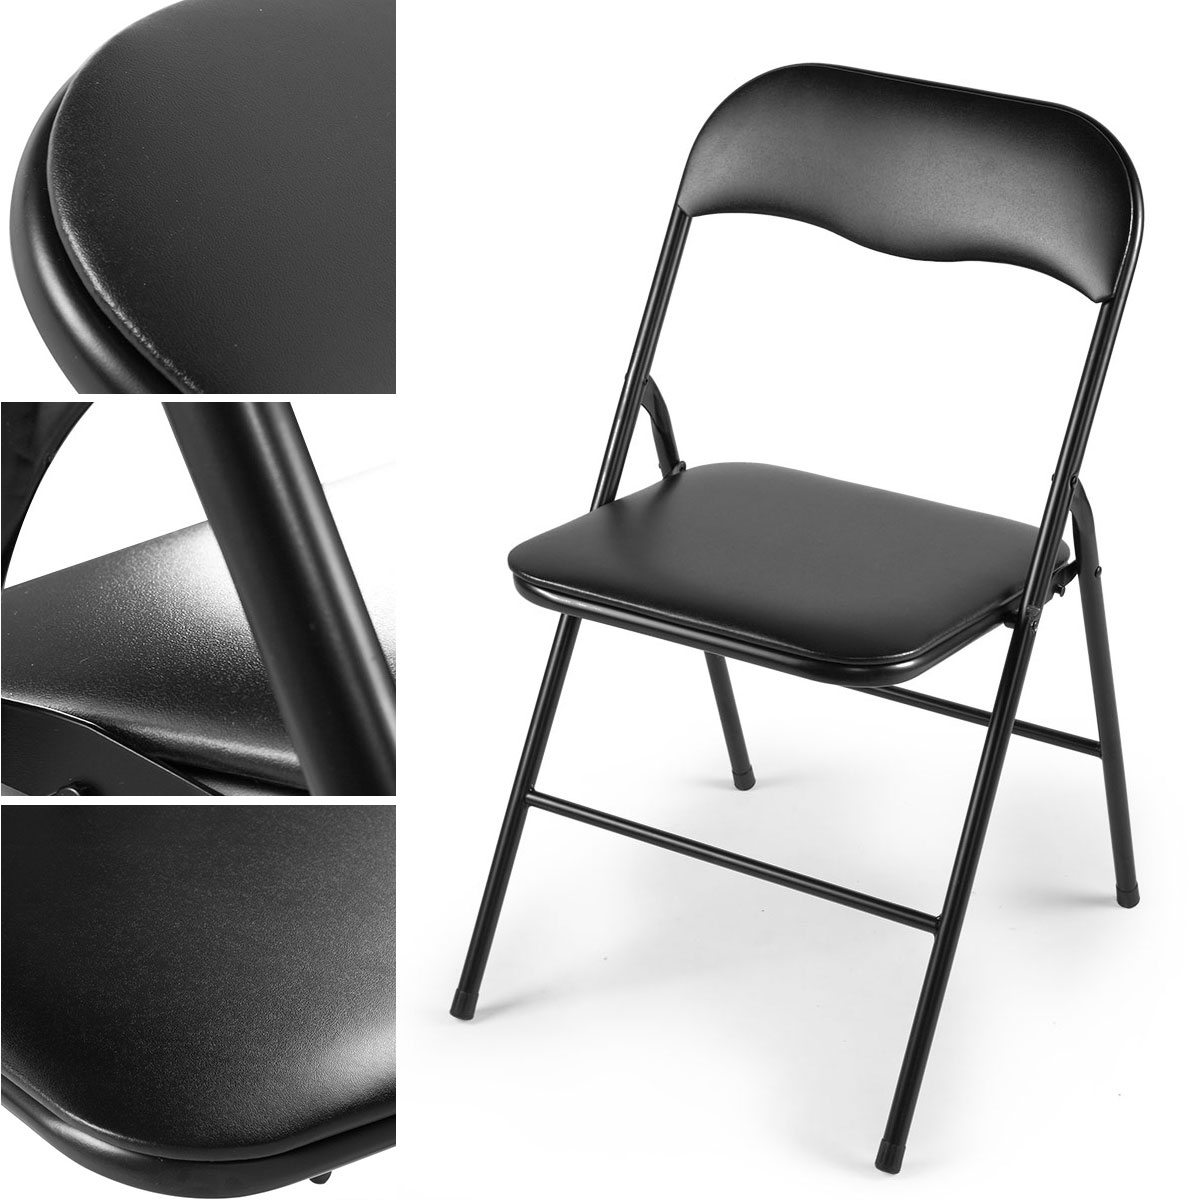 Folding Chairs Jaxpety 4pcs Commercial Wedding Quality Stack Able Plastic Folding Chairs Black W Soft Cushion Home Kitchen Belasidevelopers Co Ke